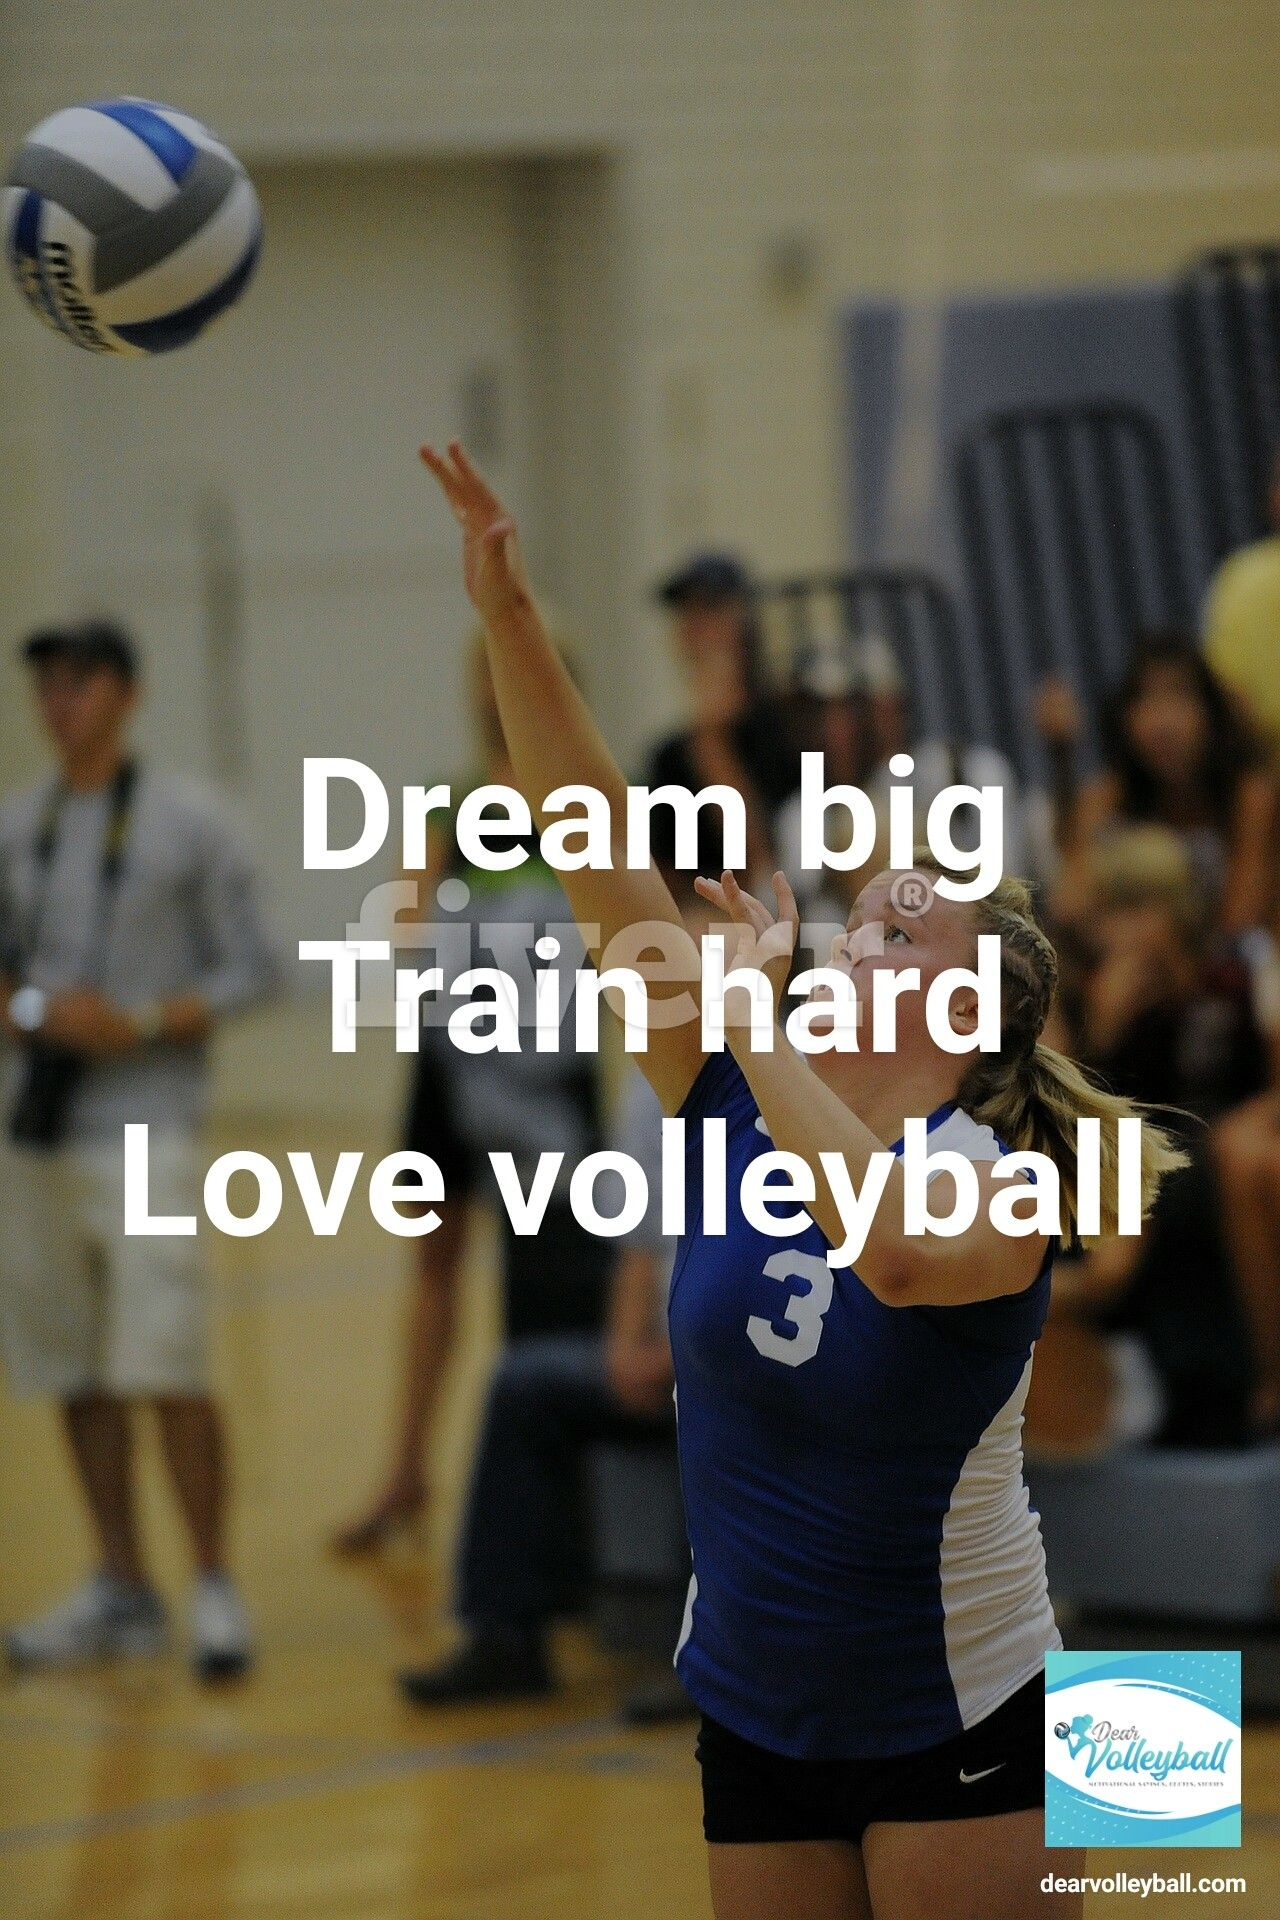 The Volleyball Quote My Club Players Were Most Inspired By Volleyball Quotes Motivational Volleyball Quotes Encouragement Quotes